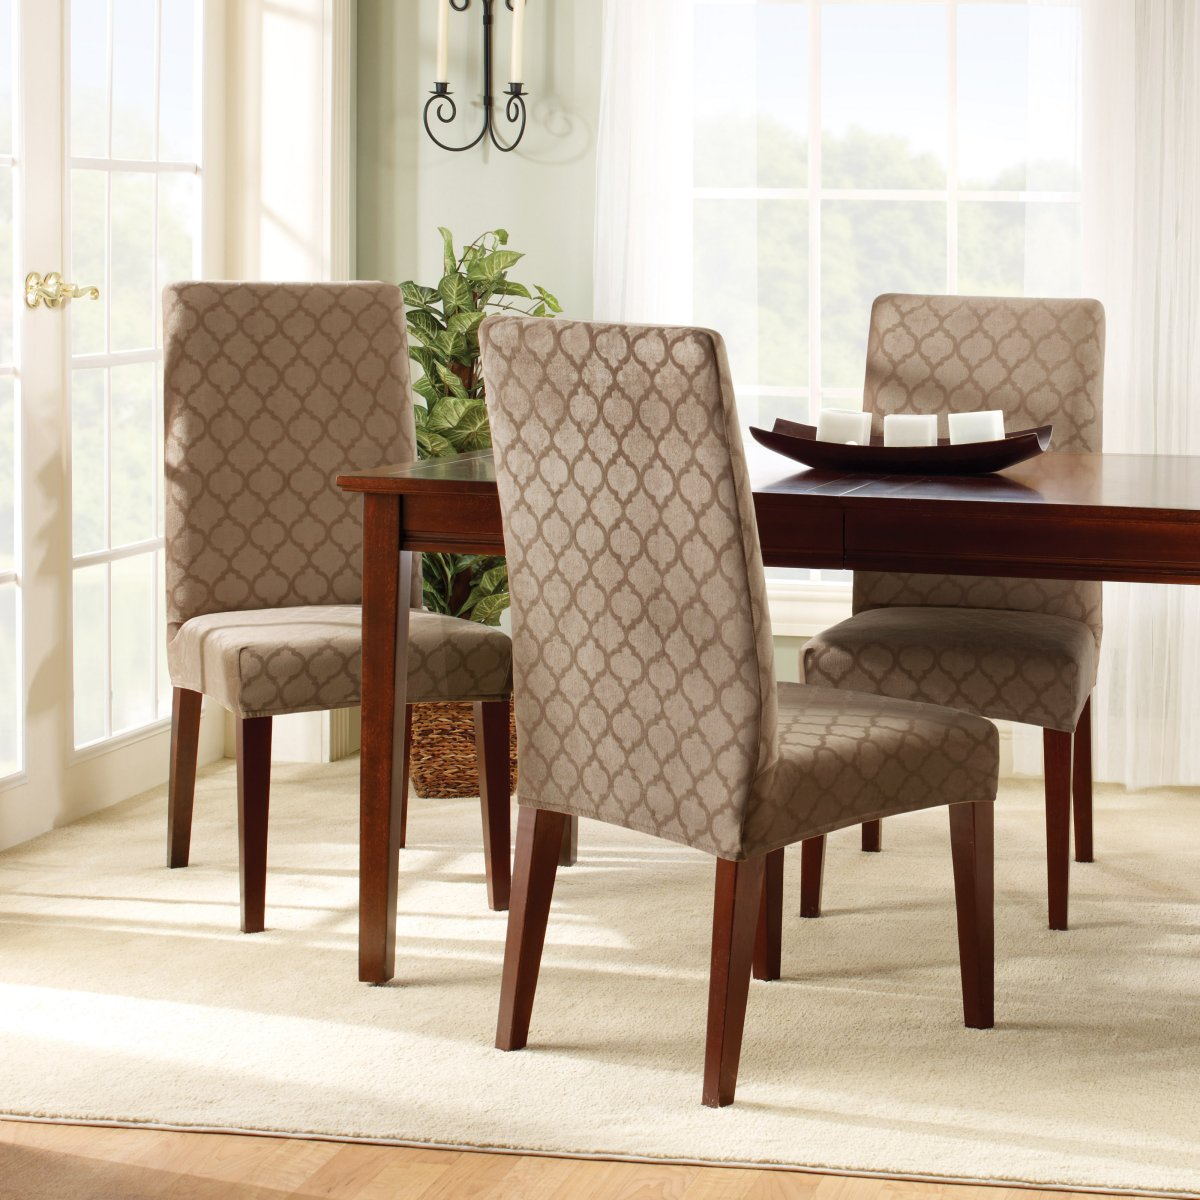 dining chair slipcovers uk